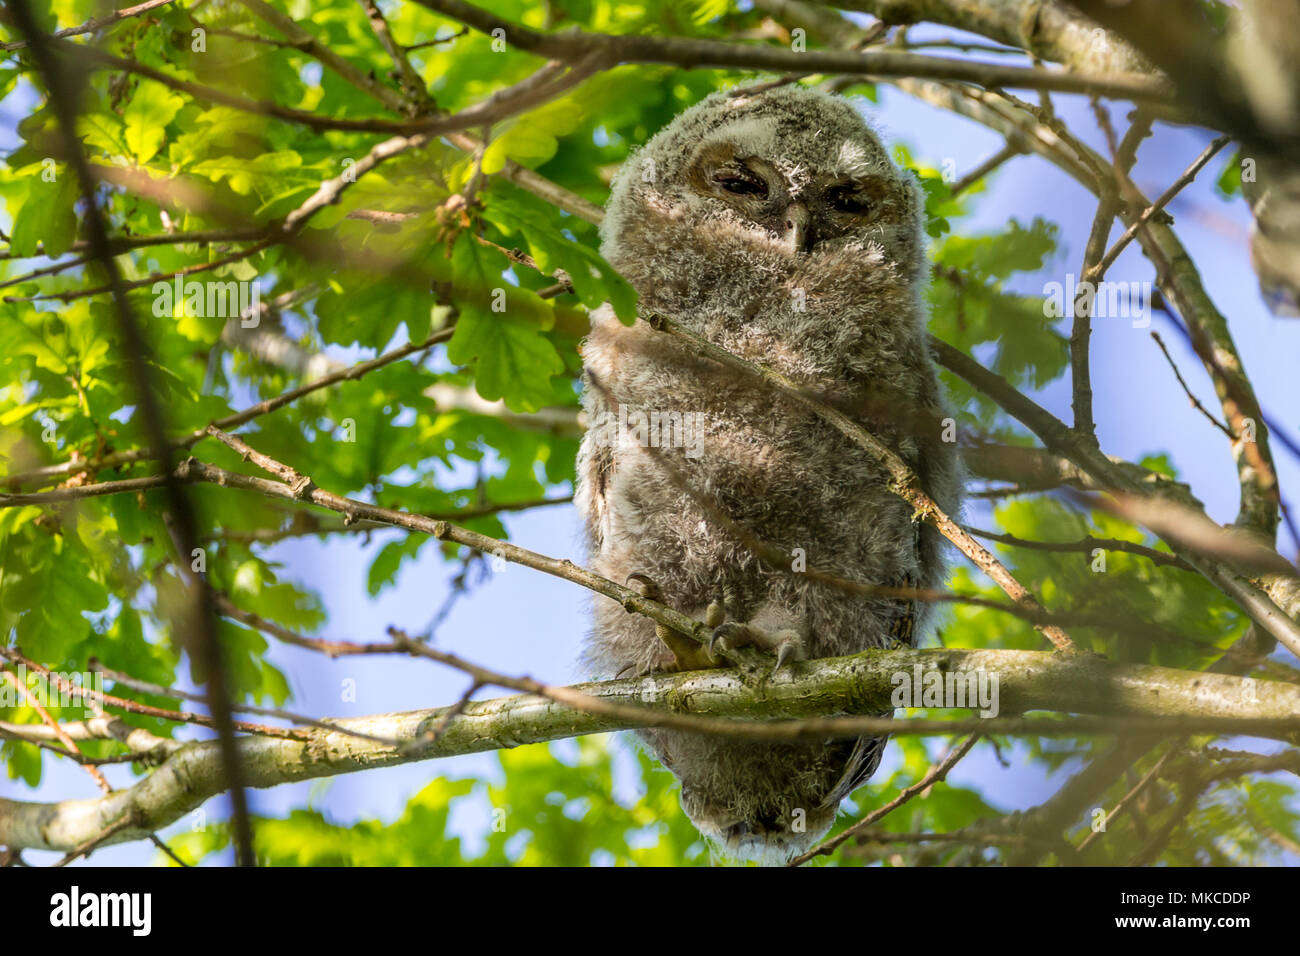 Tawny owl (Strix aluco) one of two owlets perched high in a tree about a hundred yards from an adult in a silverbirch tree said to be the mother owl. - Stock Image